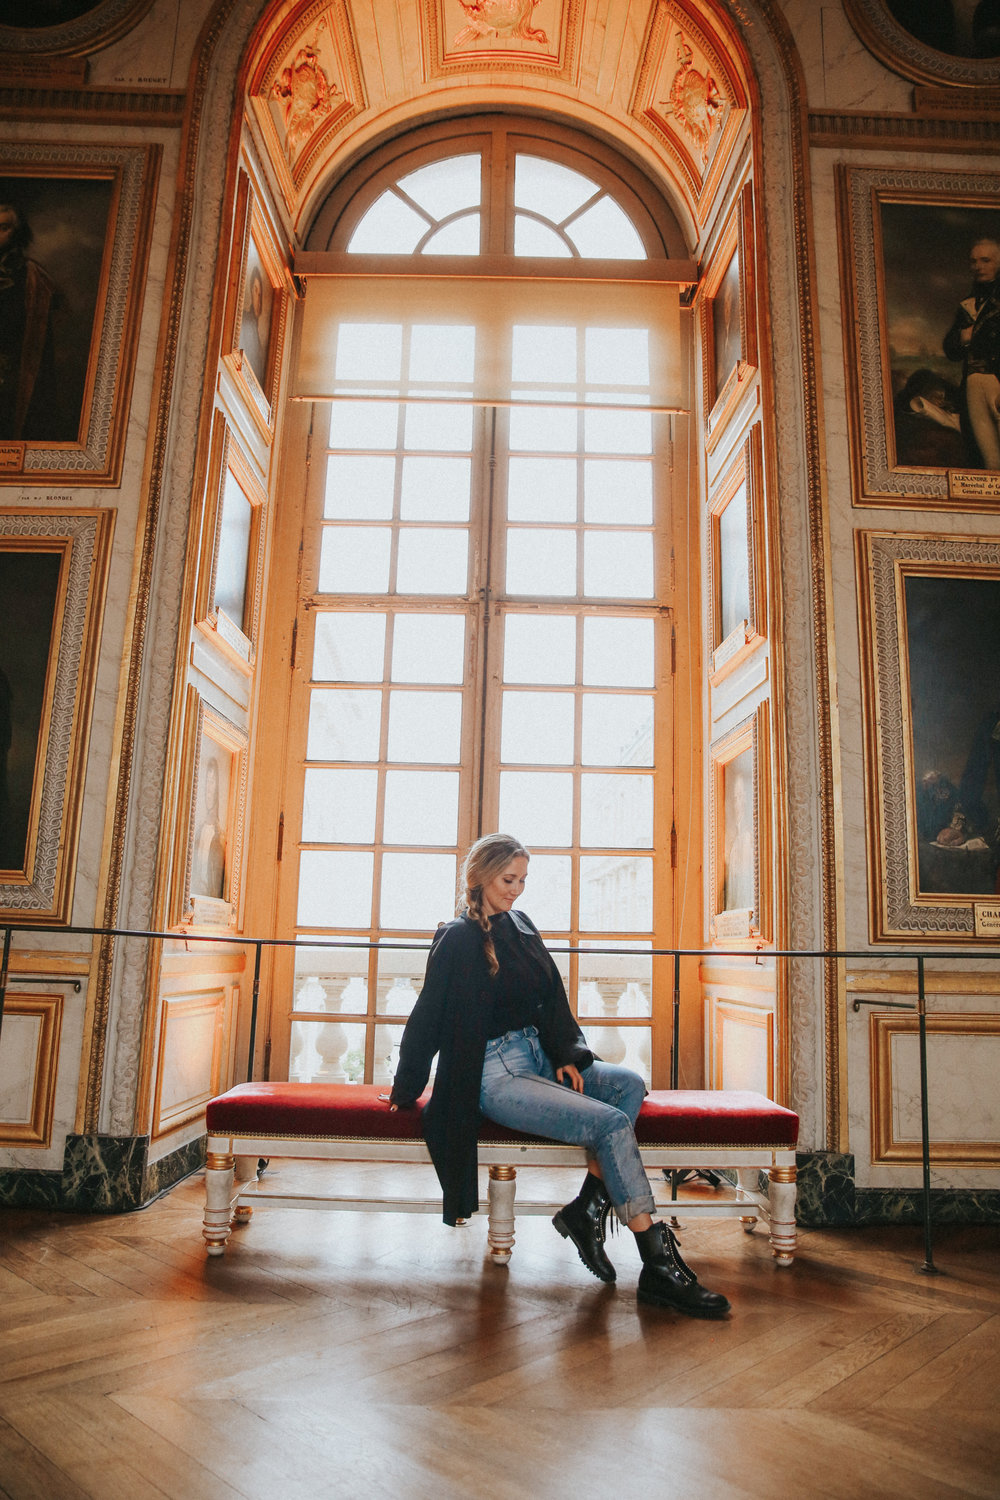 Palace of Versailles // Travel blog // Best things to do in Paris // The Style Sauce blog // Travel blog // World travels